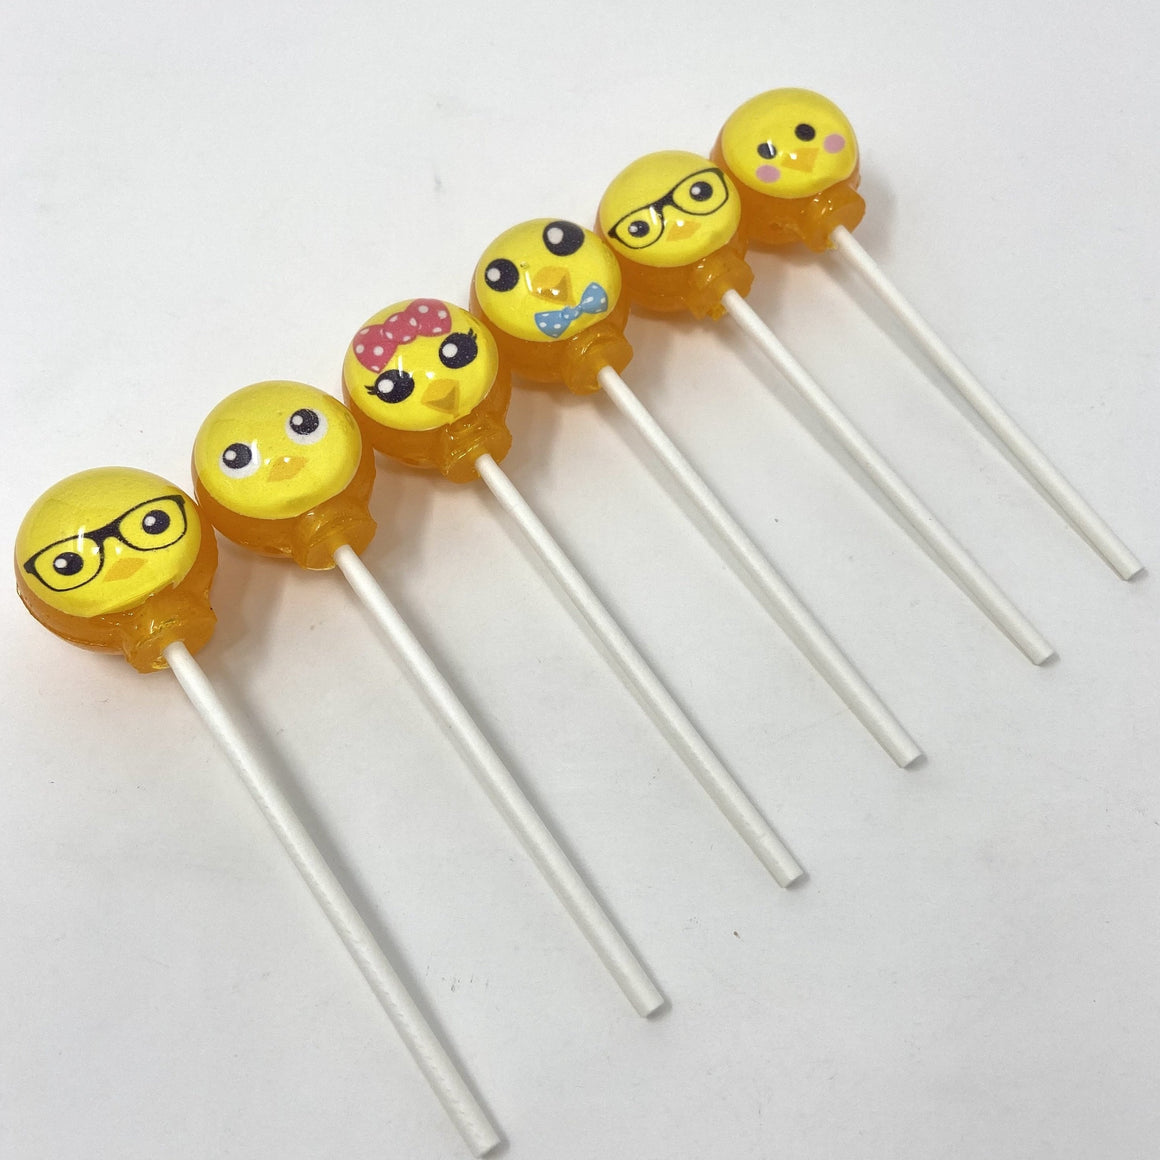 Emoji Easter Chicks set of 6 lollipops by I Want Candy!